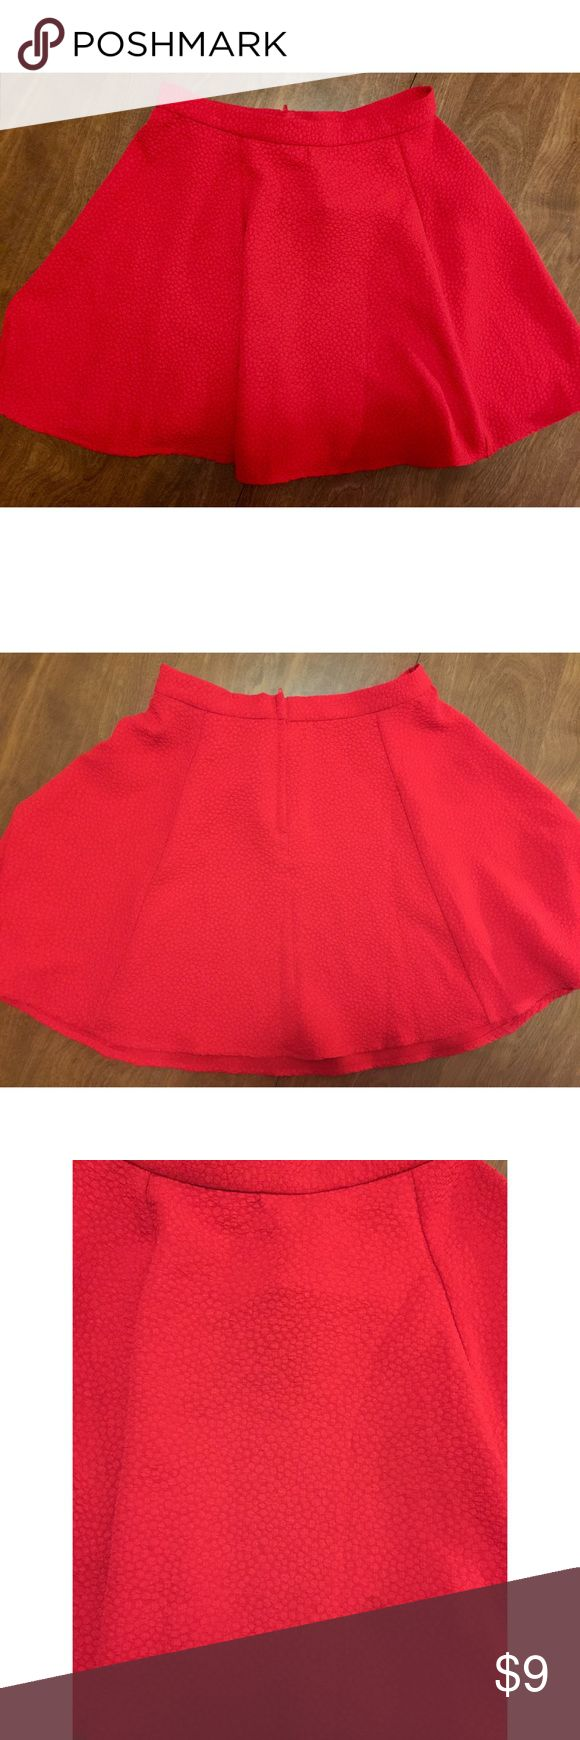 H&M - NWT - Red Skater Skirt Adorable bright red skater skirt from h&m. Never worn, tags still attached. Zippers in the back. Size 4! H&M Skirts Mini